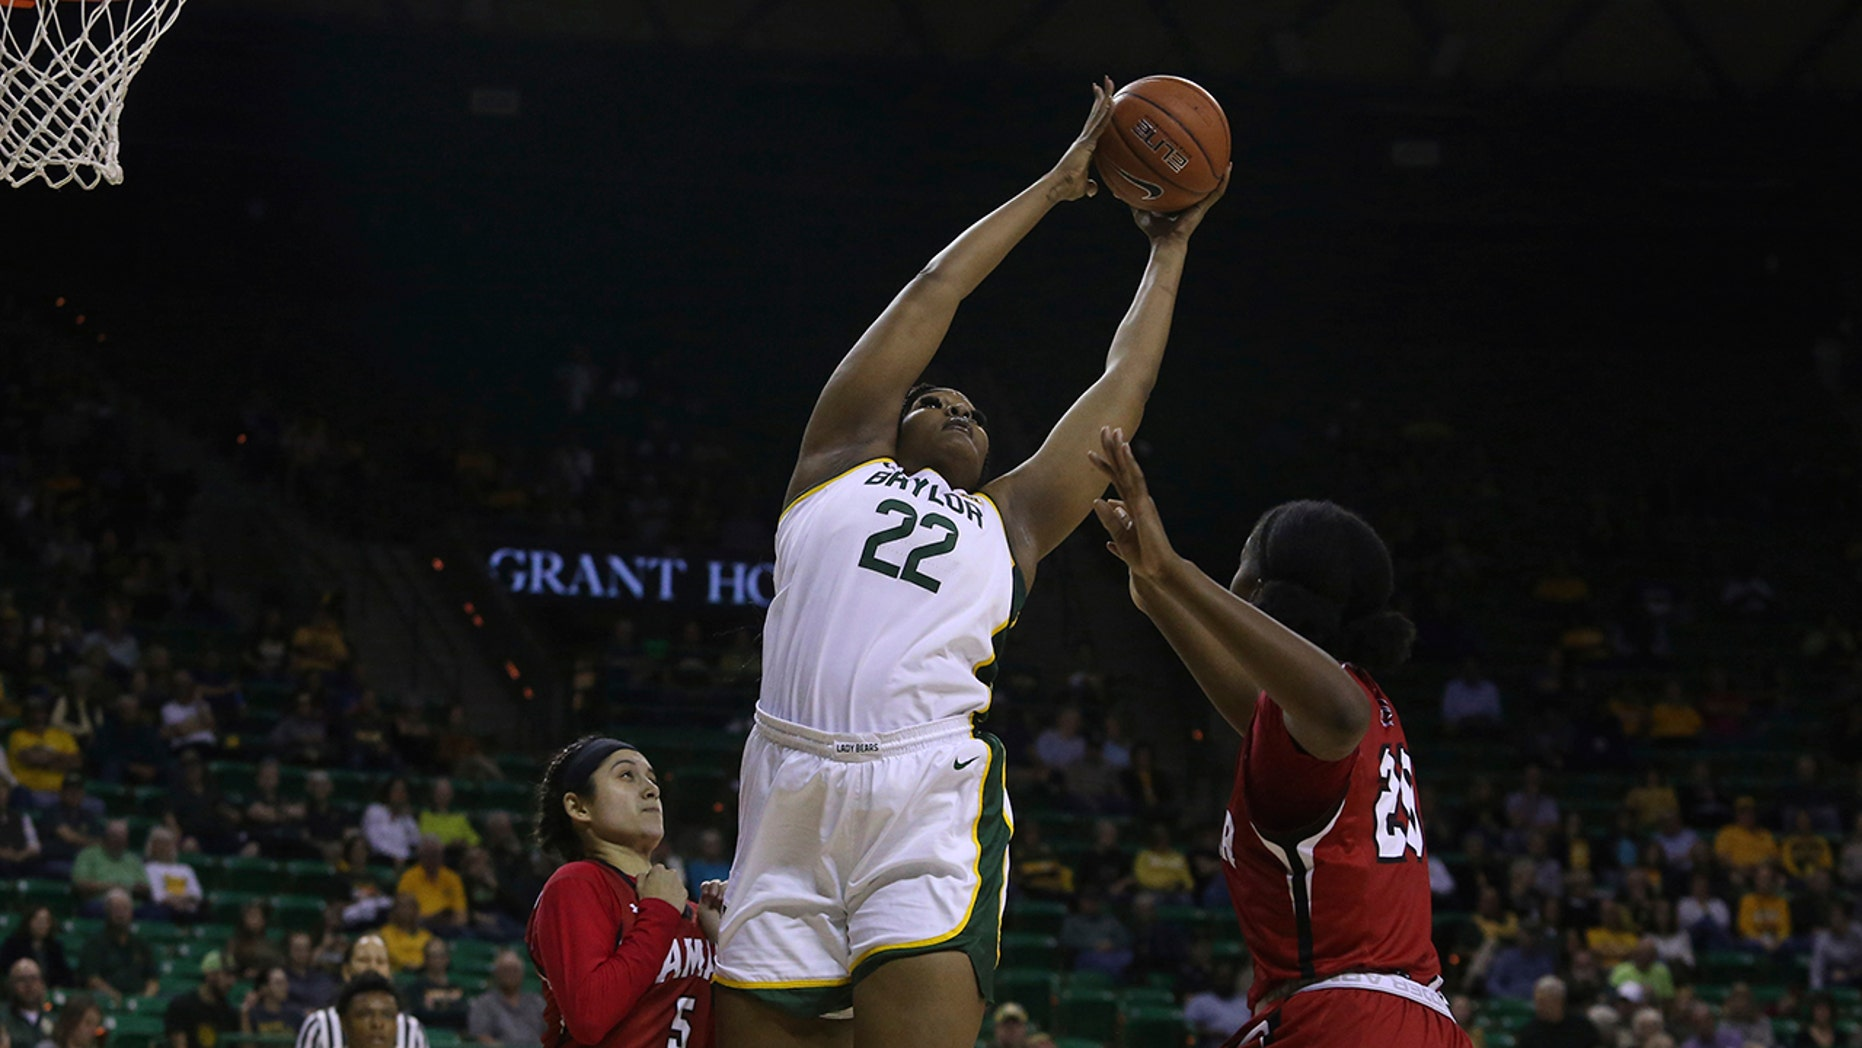 Baylor center Erin DeGrate (22) leaps for the ball against Lamar center Rikiah Cowart (20) and Lamar guard Amber Vidal (5) in the first half of an NCAA college basketball game, Thursday, Nov. 21, 2019, in Waco, Texas. (AP Photo/Jerry Larson)